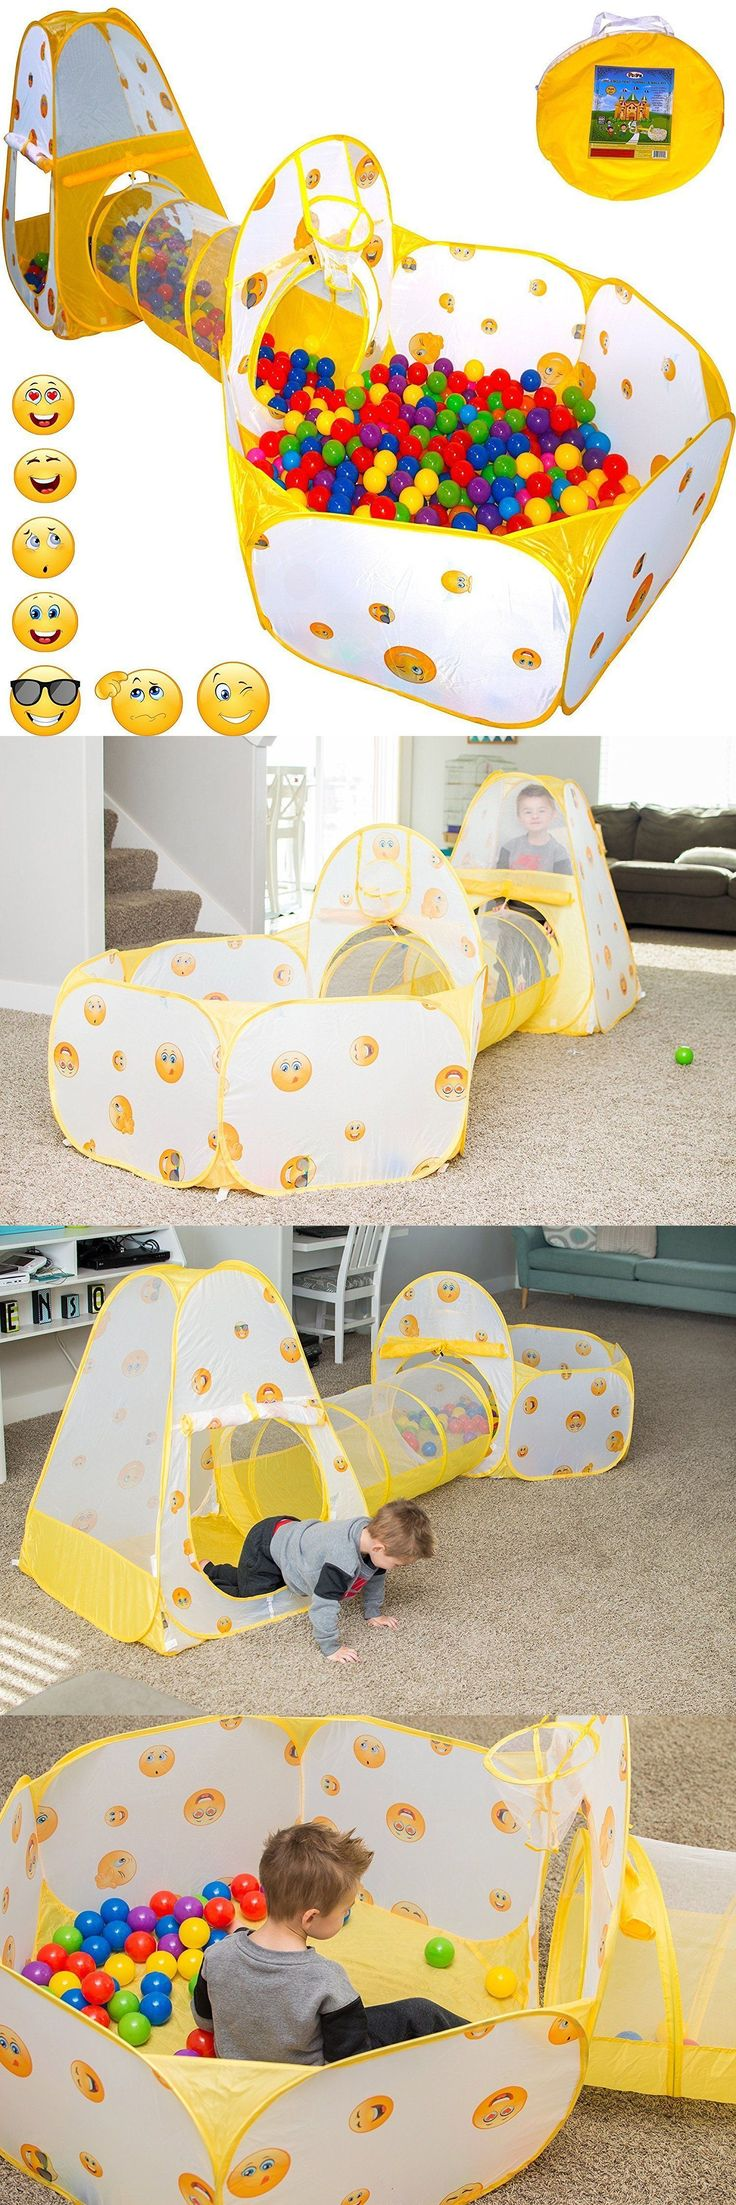 Toys for Baby 19068: Baby Play Tent Crawl Tunnel And Ball Pit Toddler Toy Stages Playhouse Emoji Toy -> BUY IT NOW ONLY: $36.93 on eBay! #toddlerplayhouse